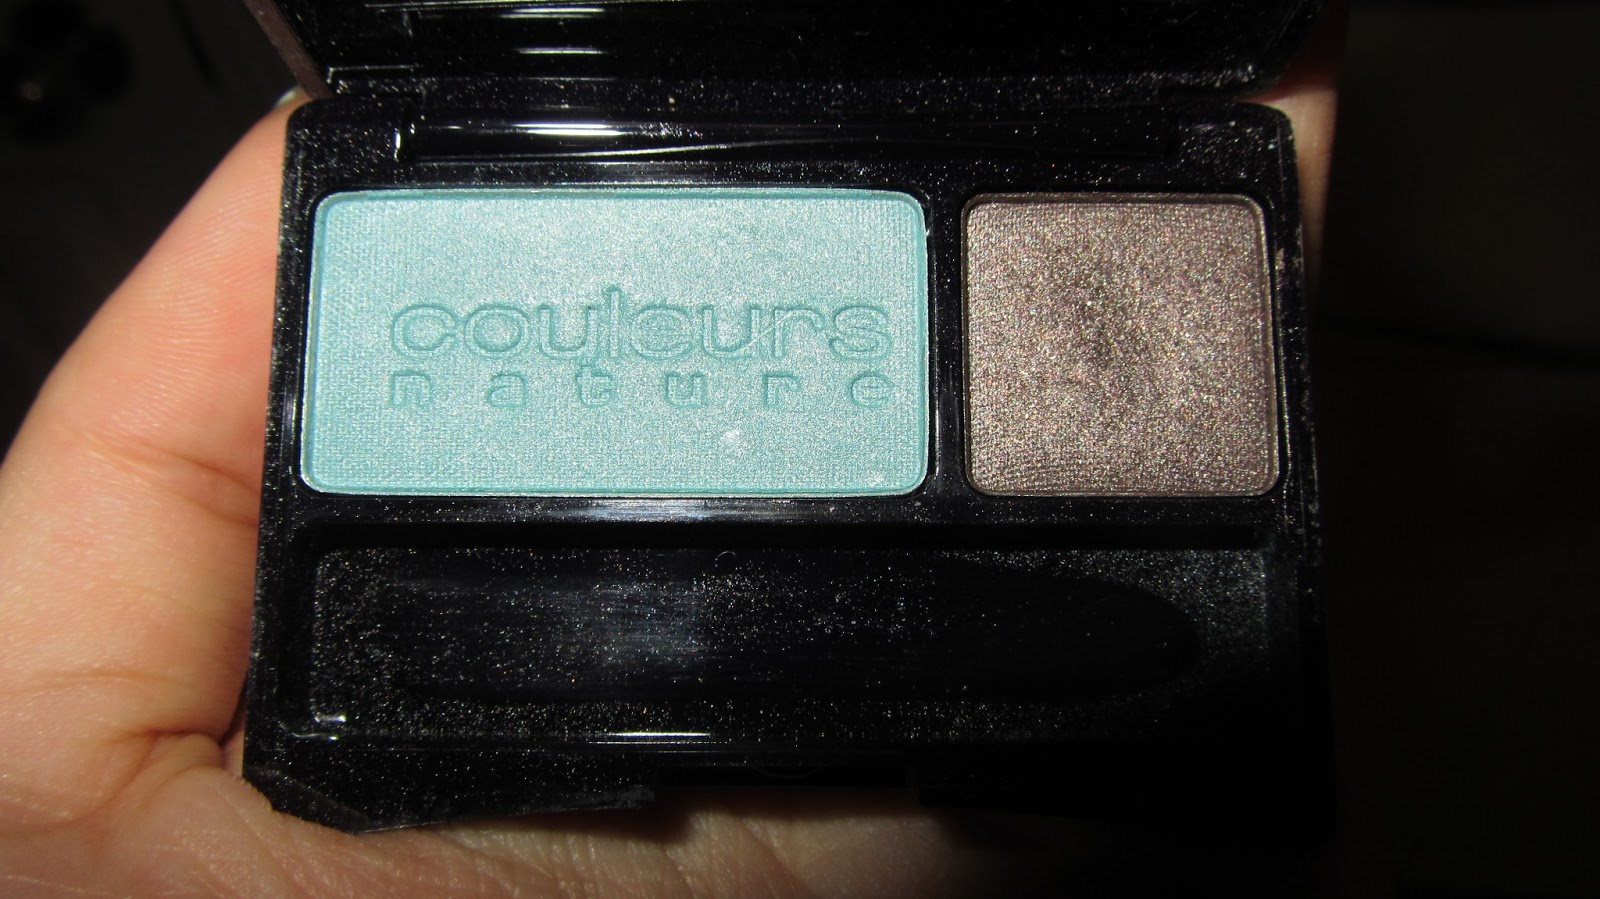 phan-mat-yves-rocher-trang-diem-mat-intense-color-duo-eyeshadow-06